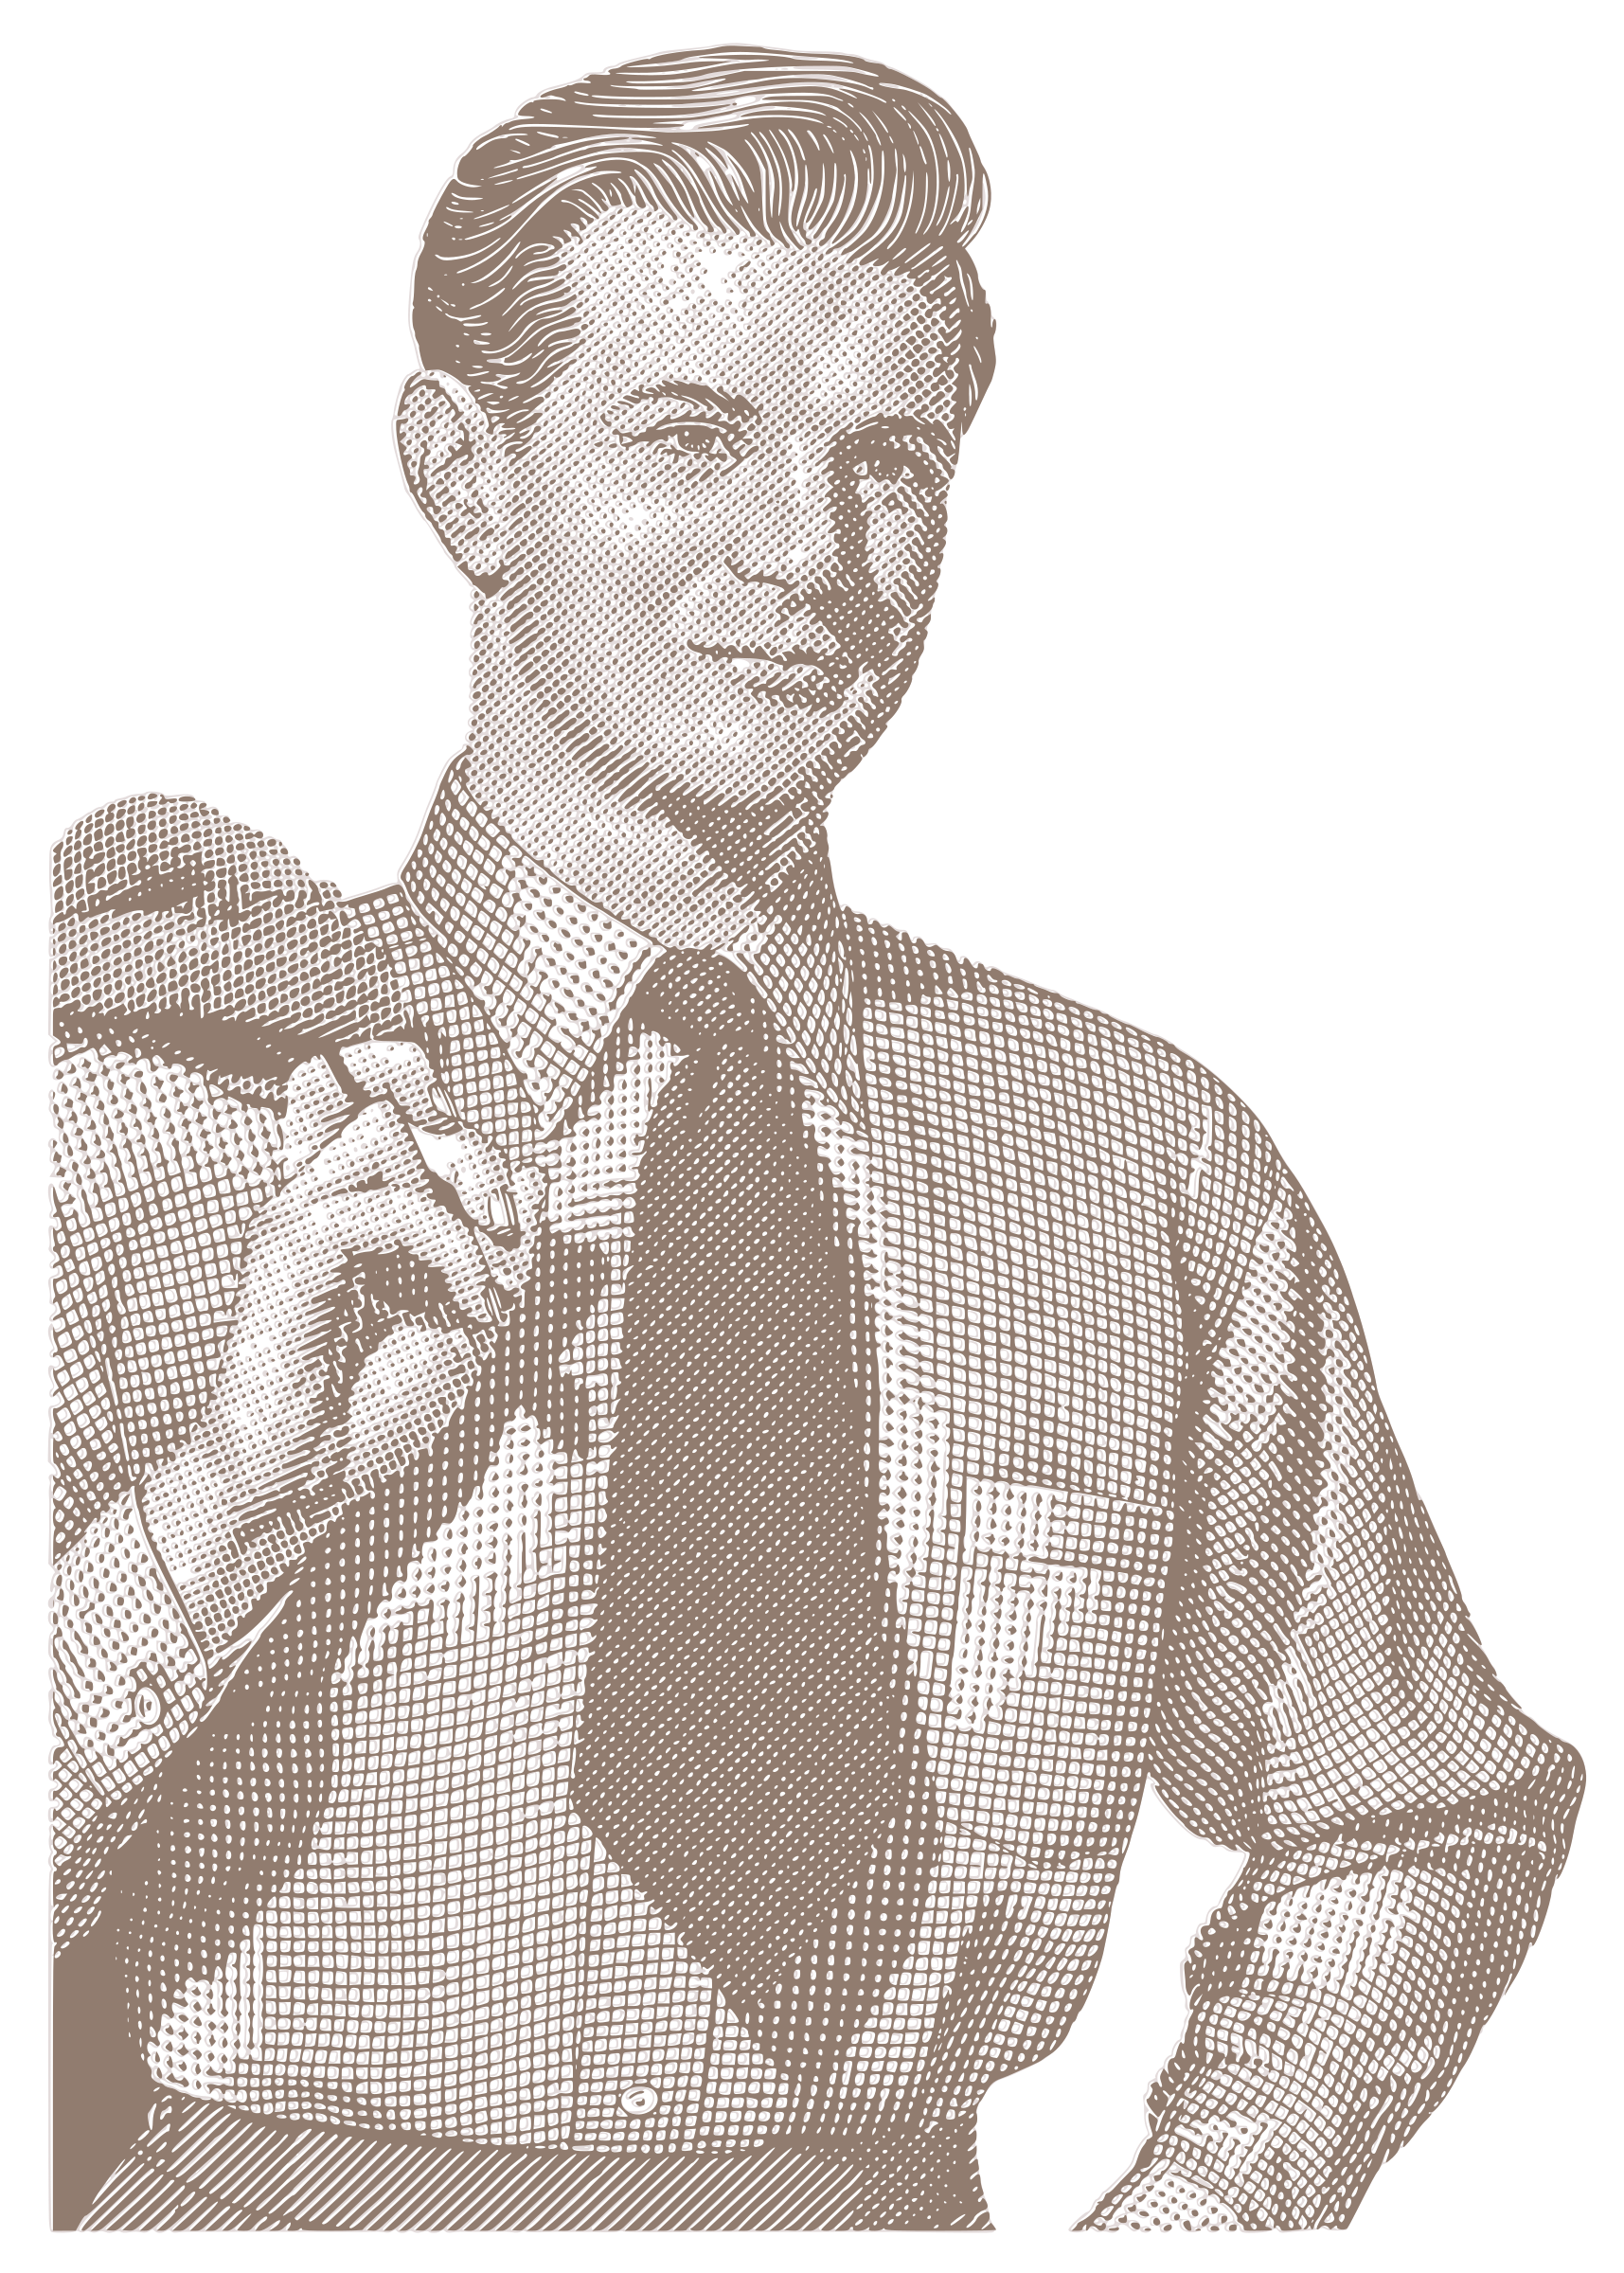 Vintage man big image. Retro clipart business